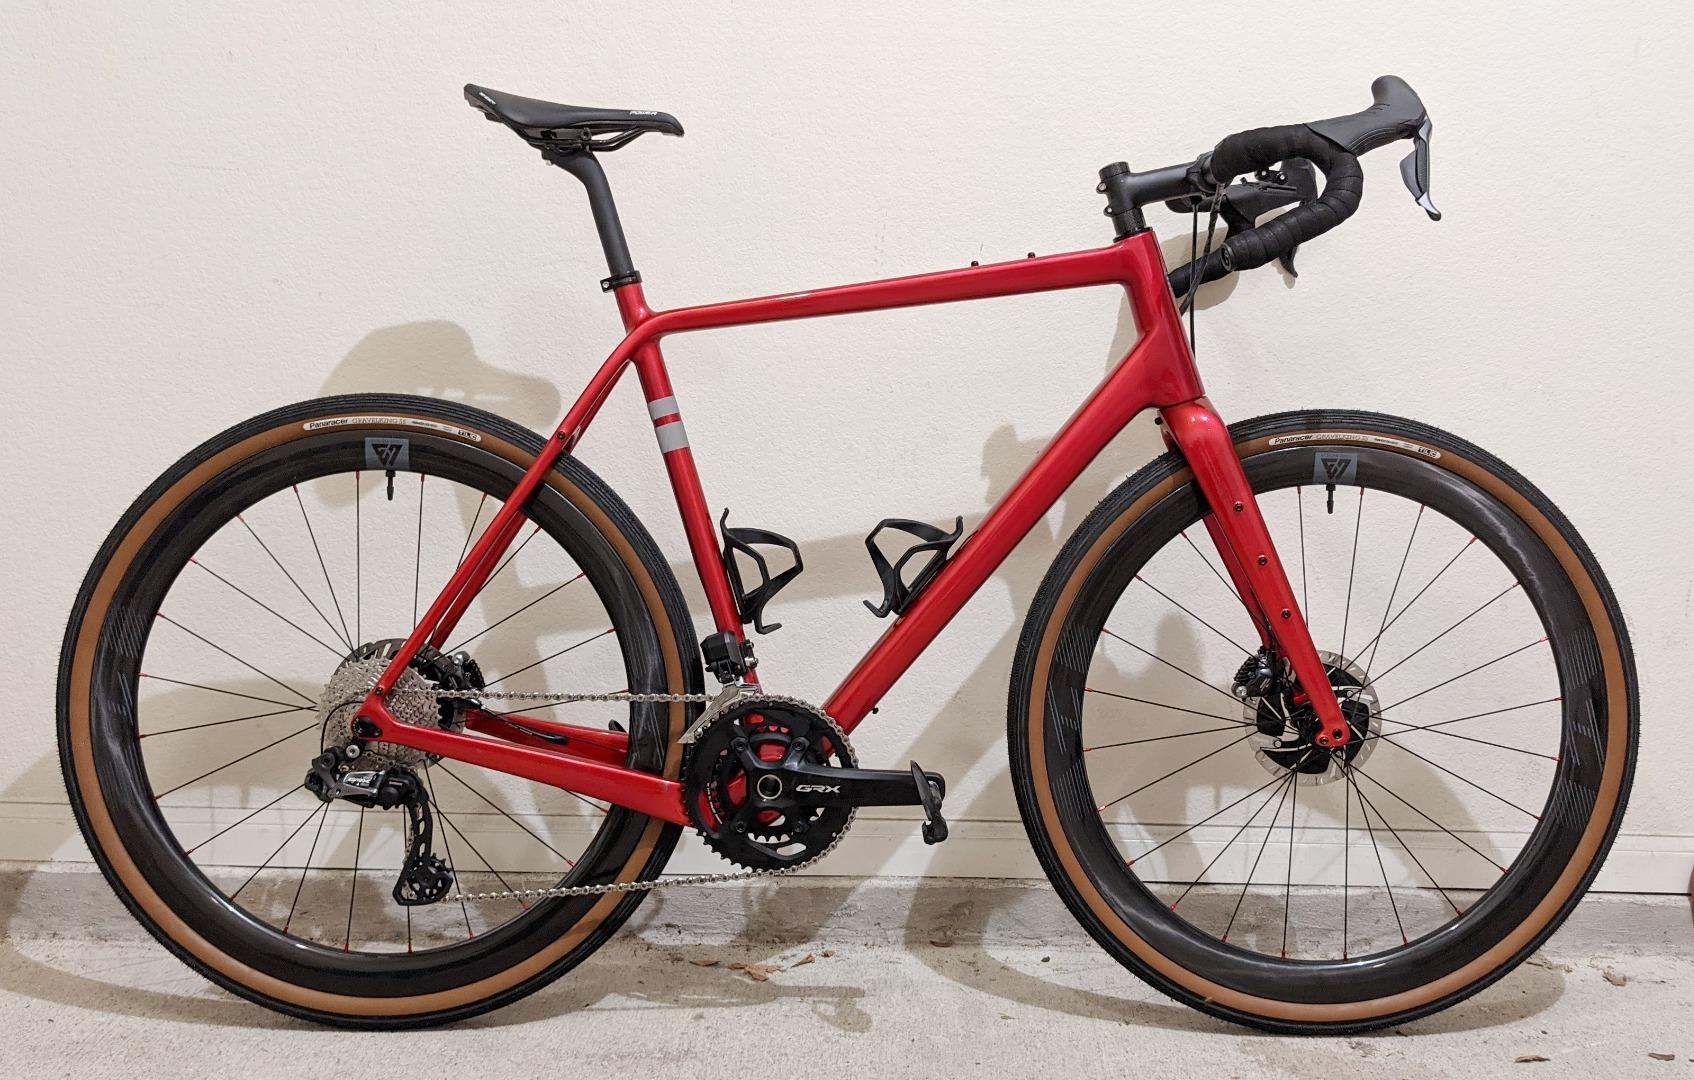 carbonda-696-red-frame-with-45mm-carbon-wheelset